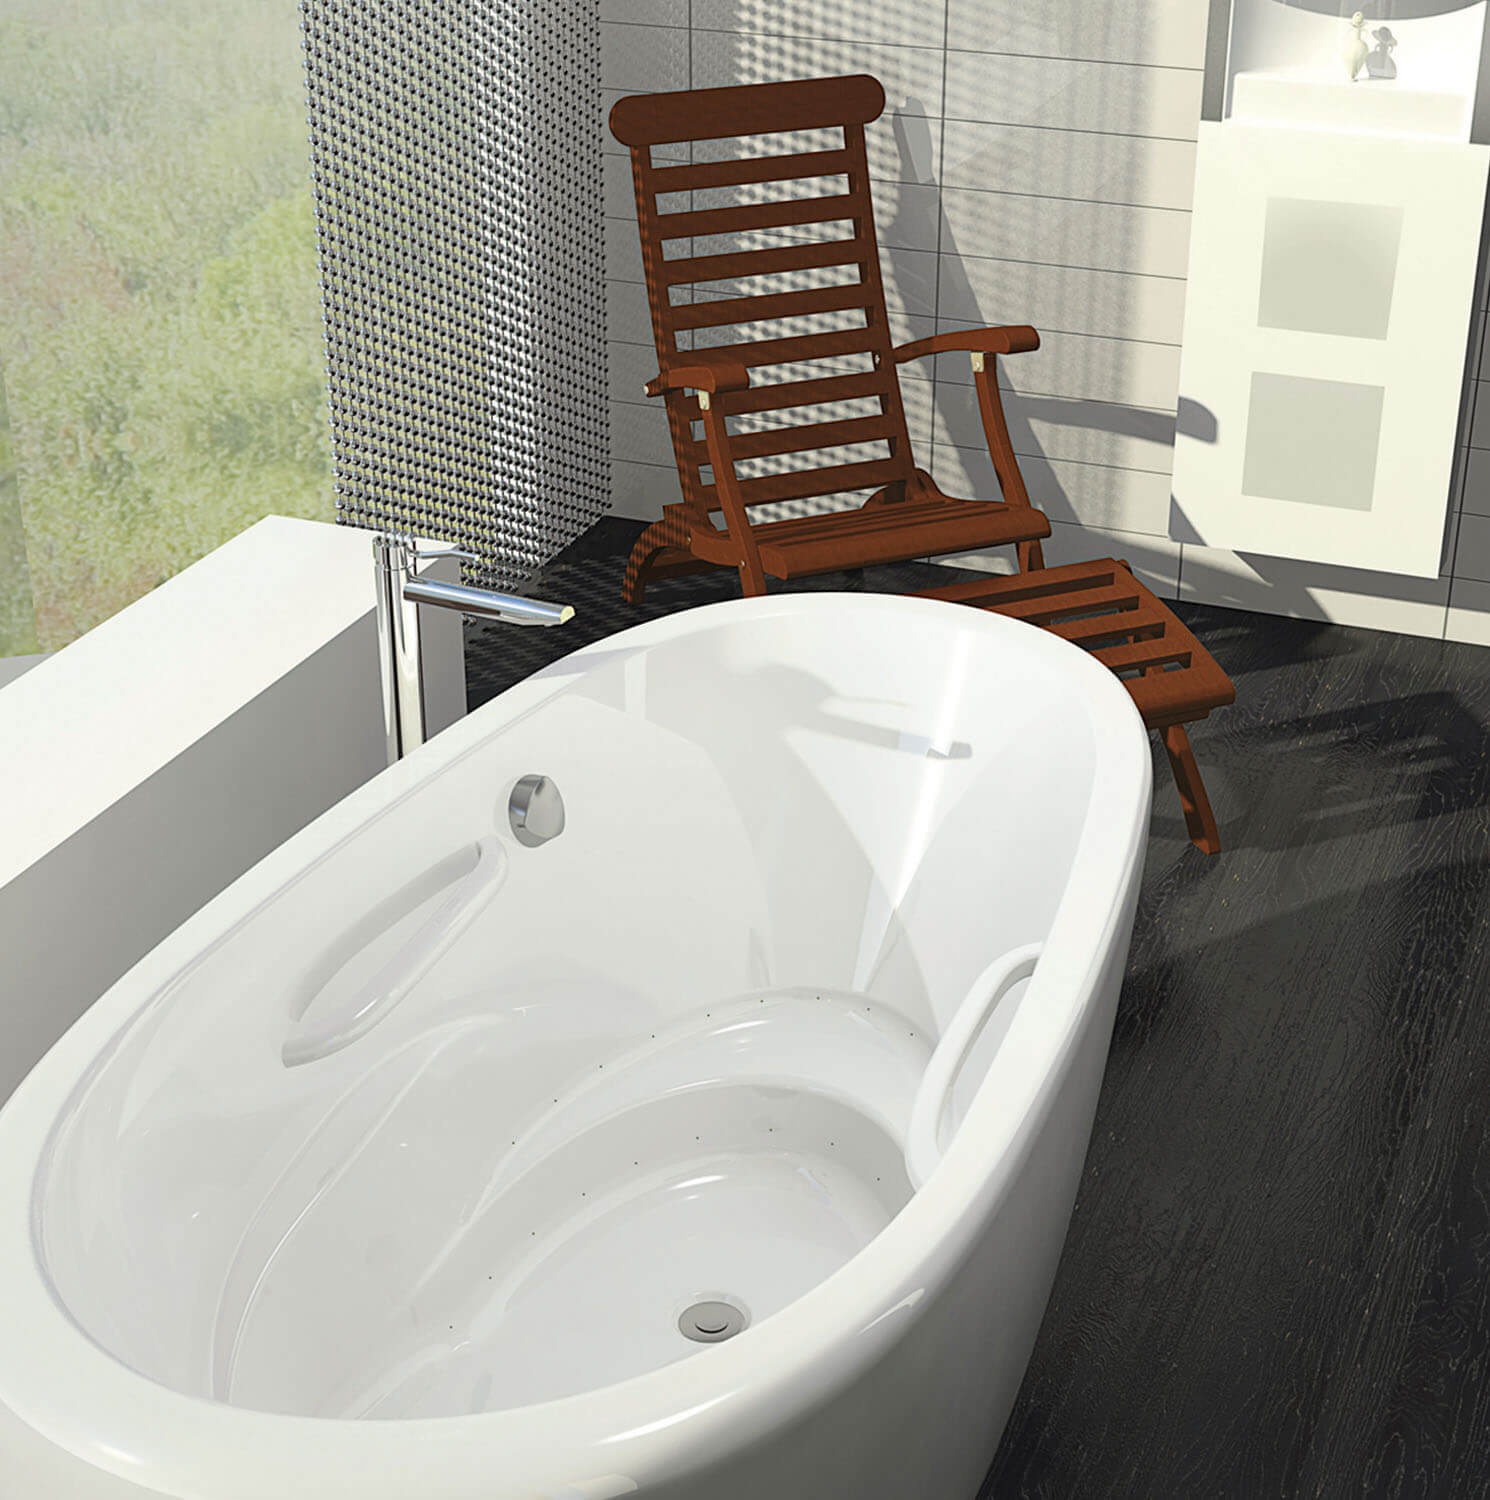 Bainultra Essencia® Oval 7236 freestanding air jet bathtub for your modern bathroom